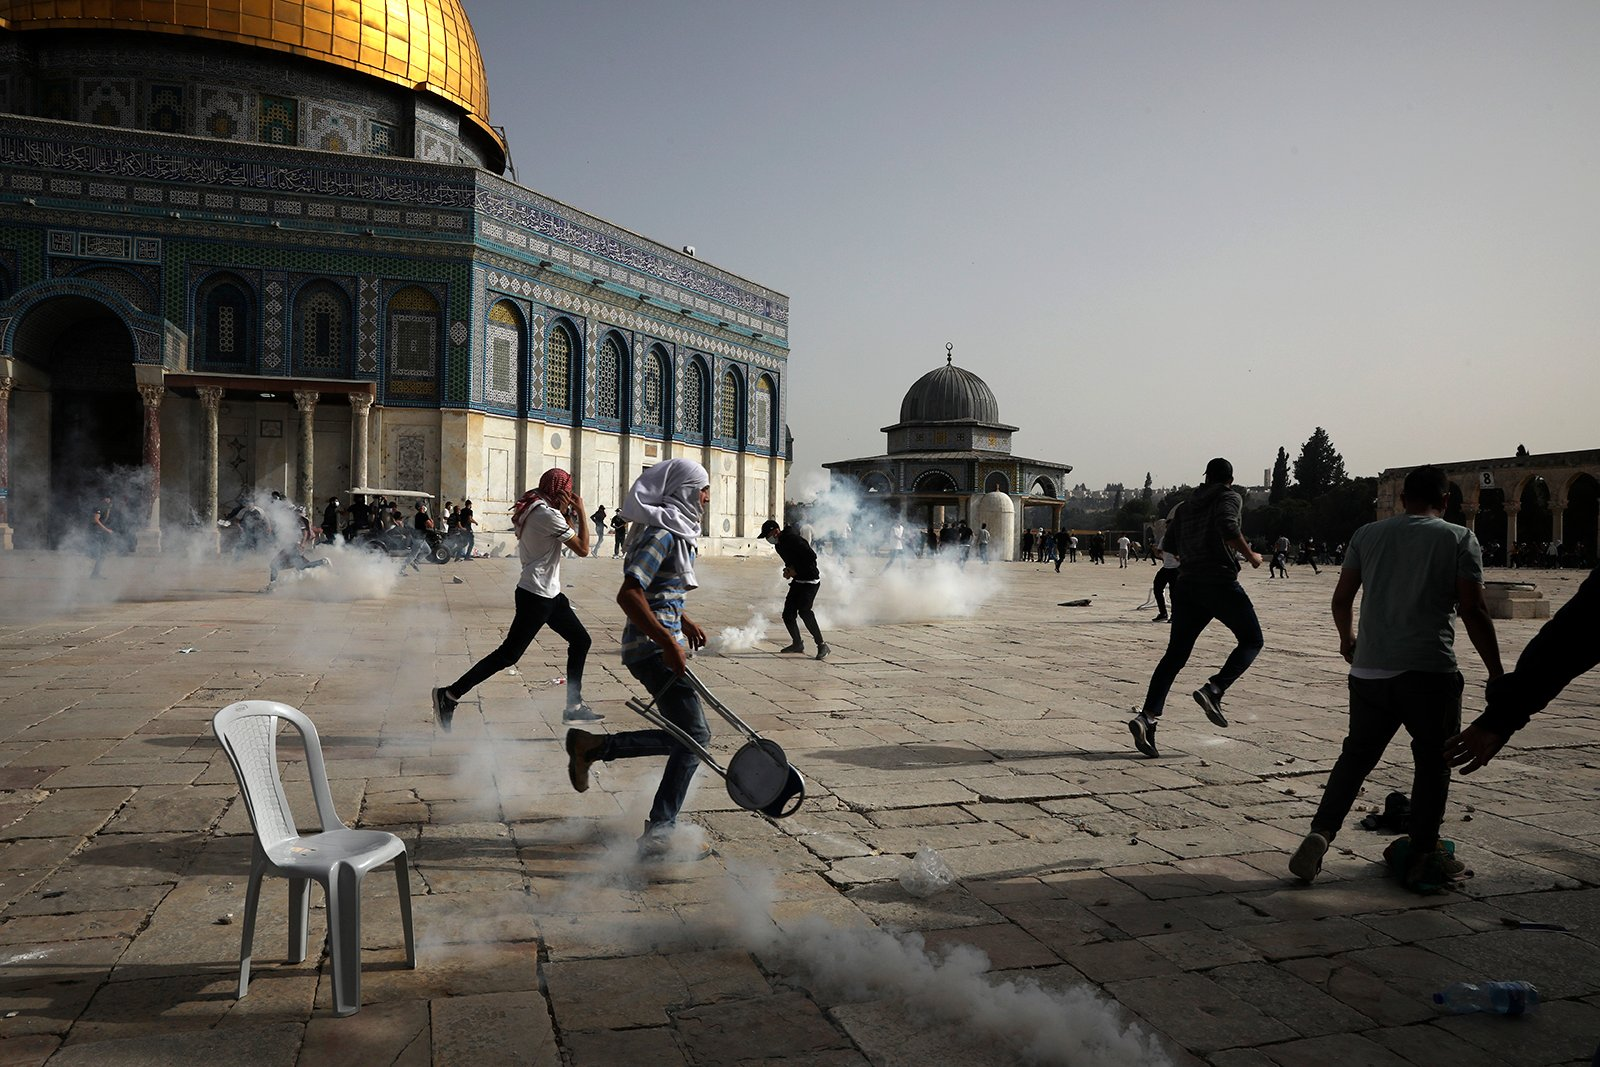 Al-Aqsa attacks harmed the mosque, but long-term cost will be Palestinian anger